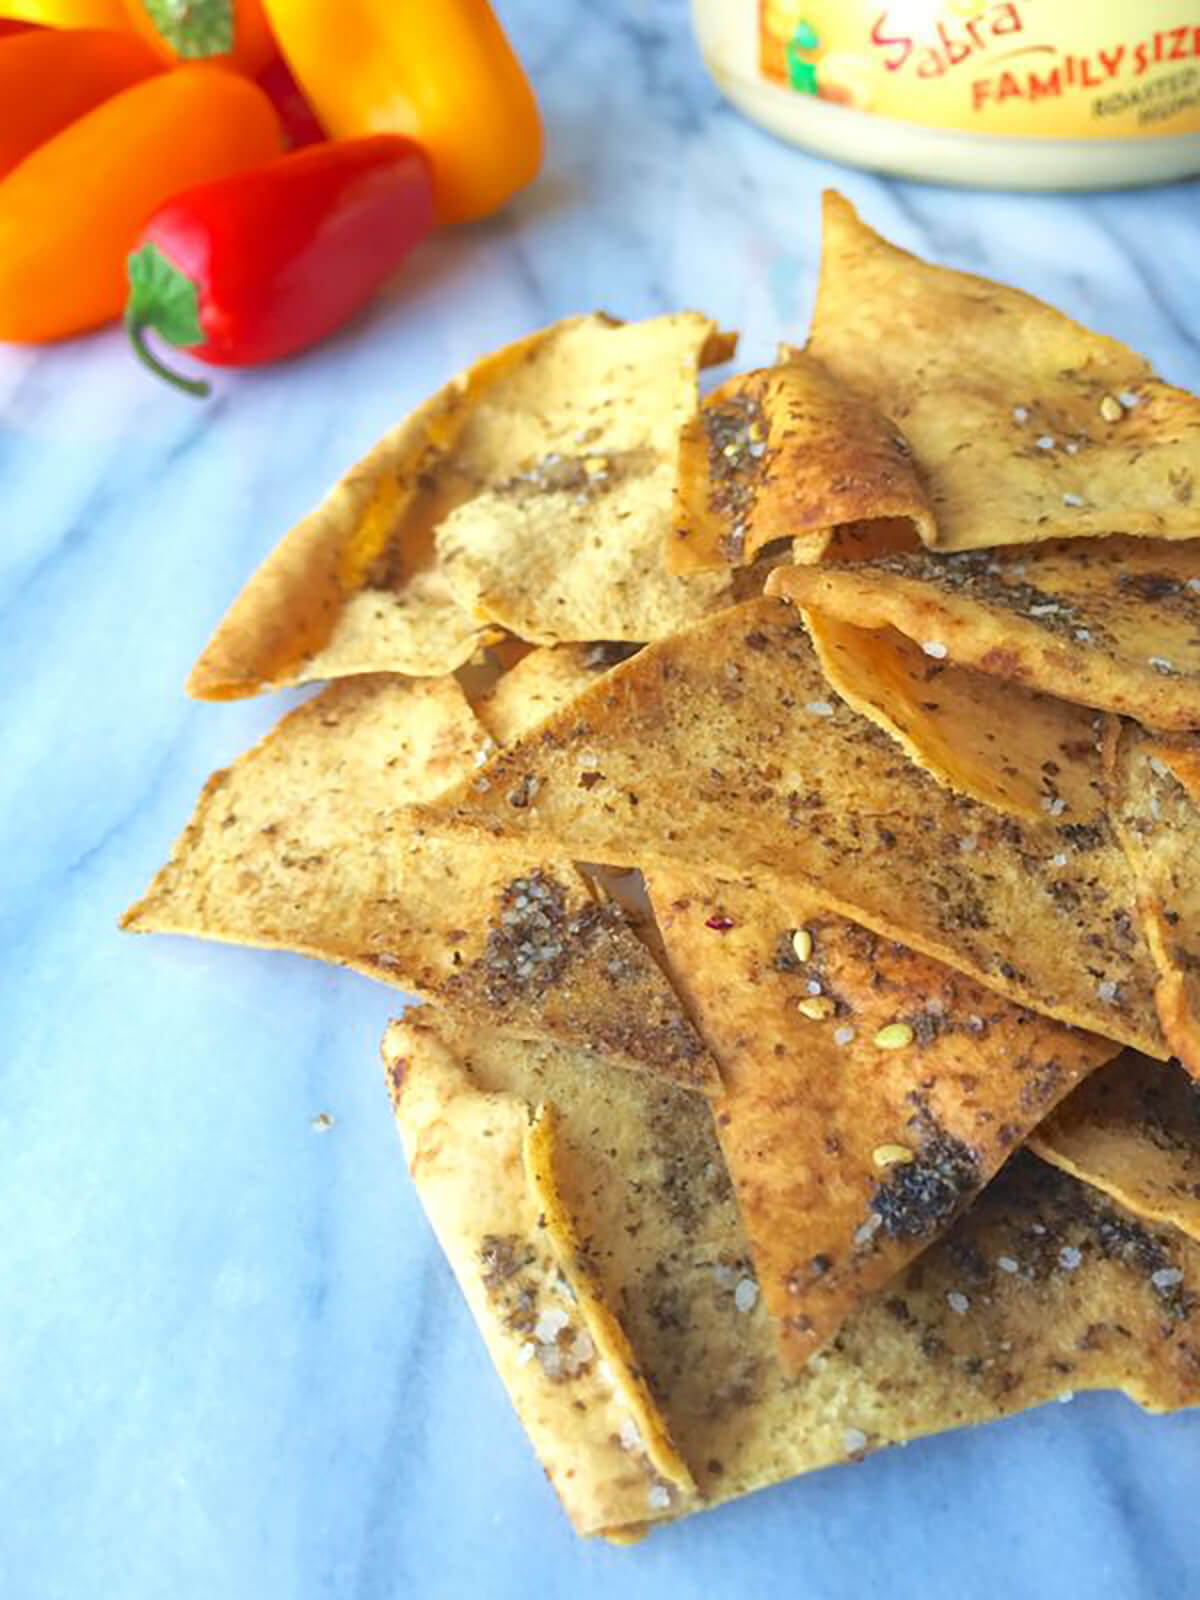 pita chips on a table